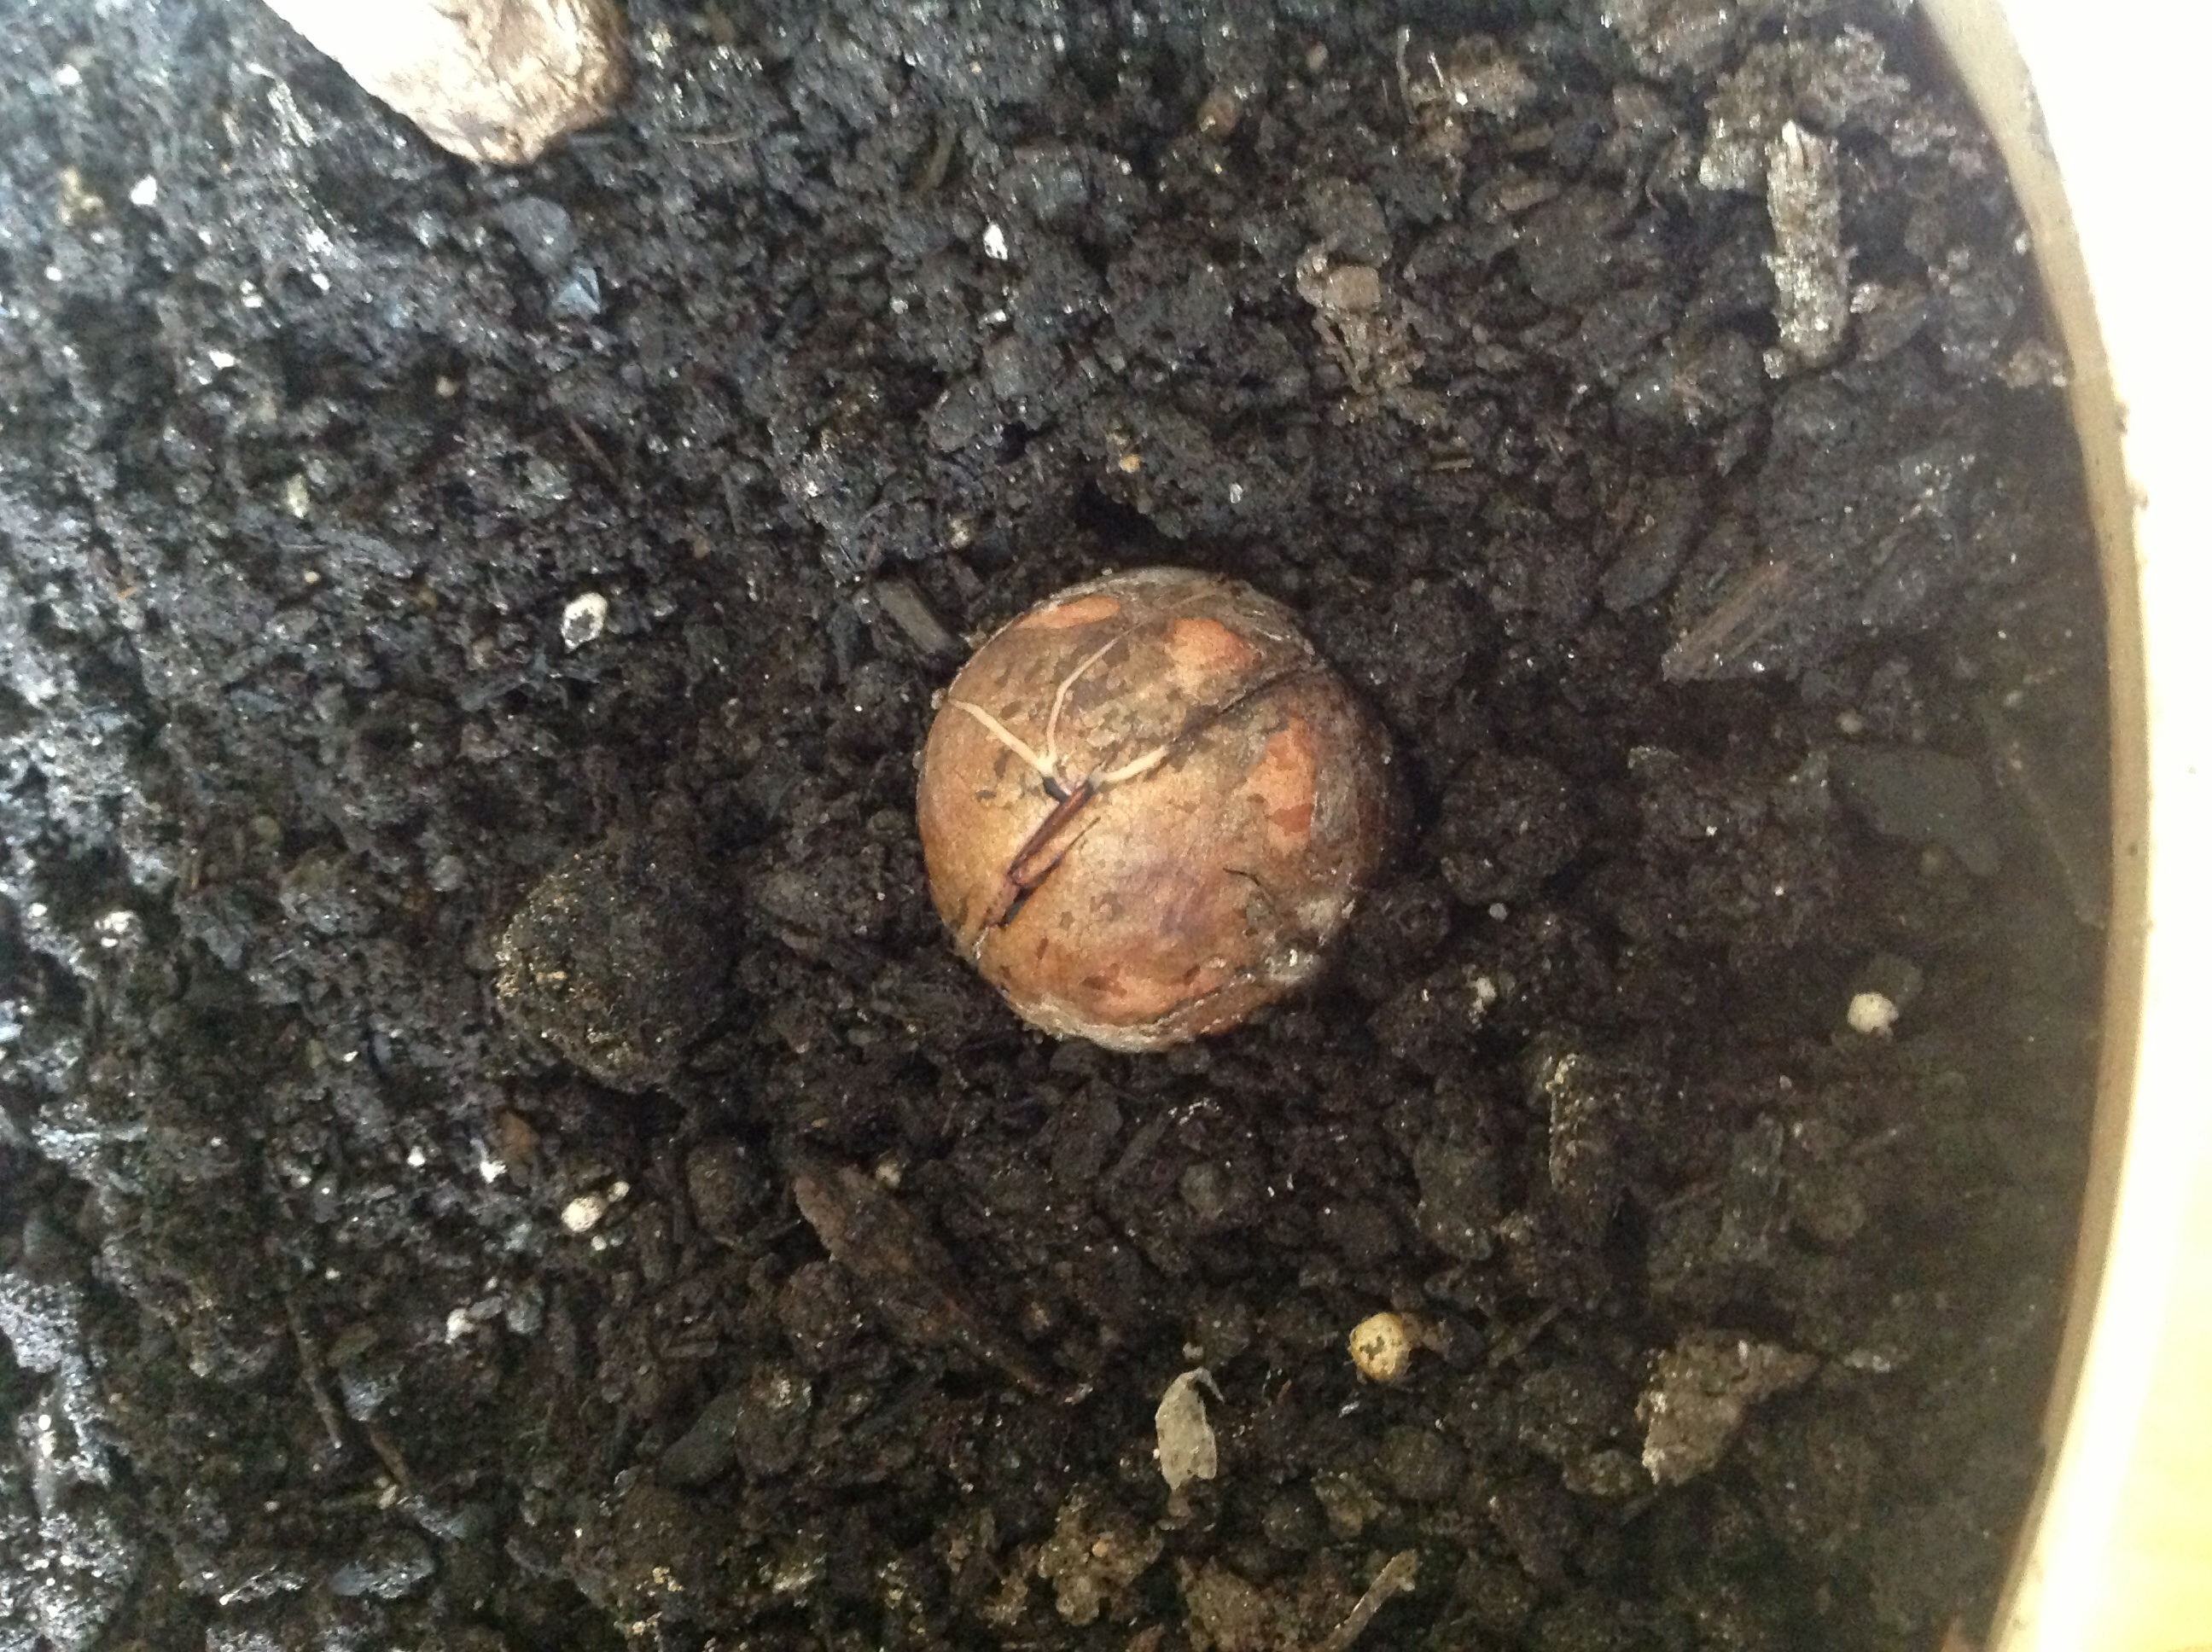 Seed nestled in soil, cracks visible